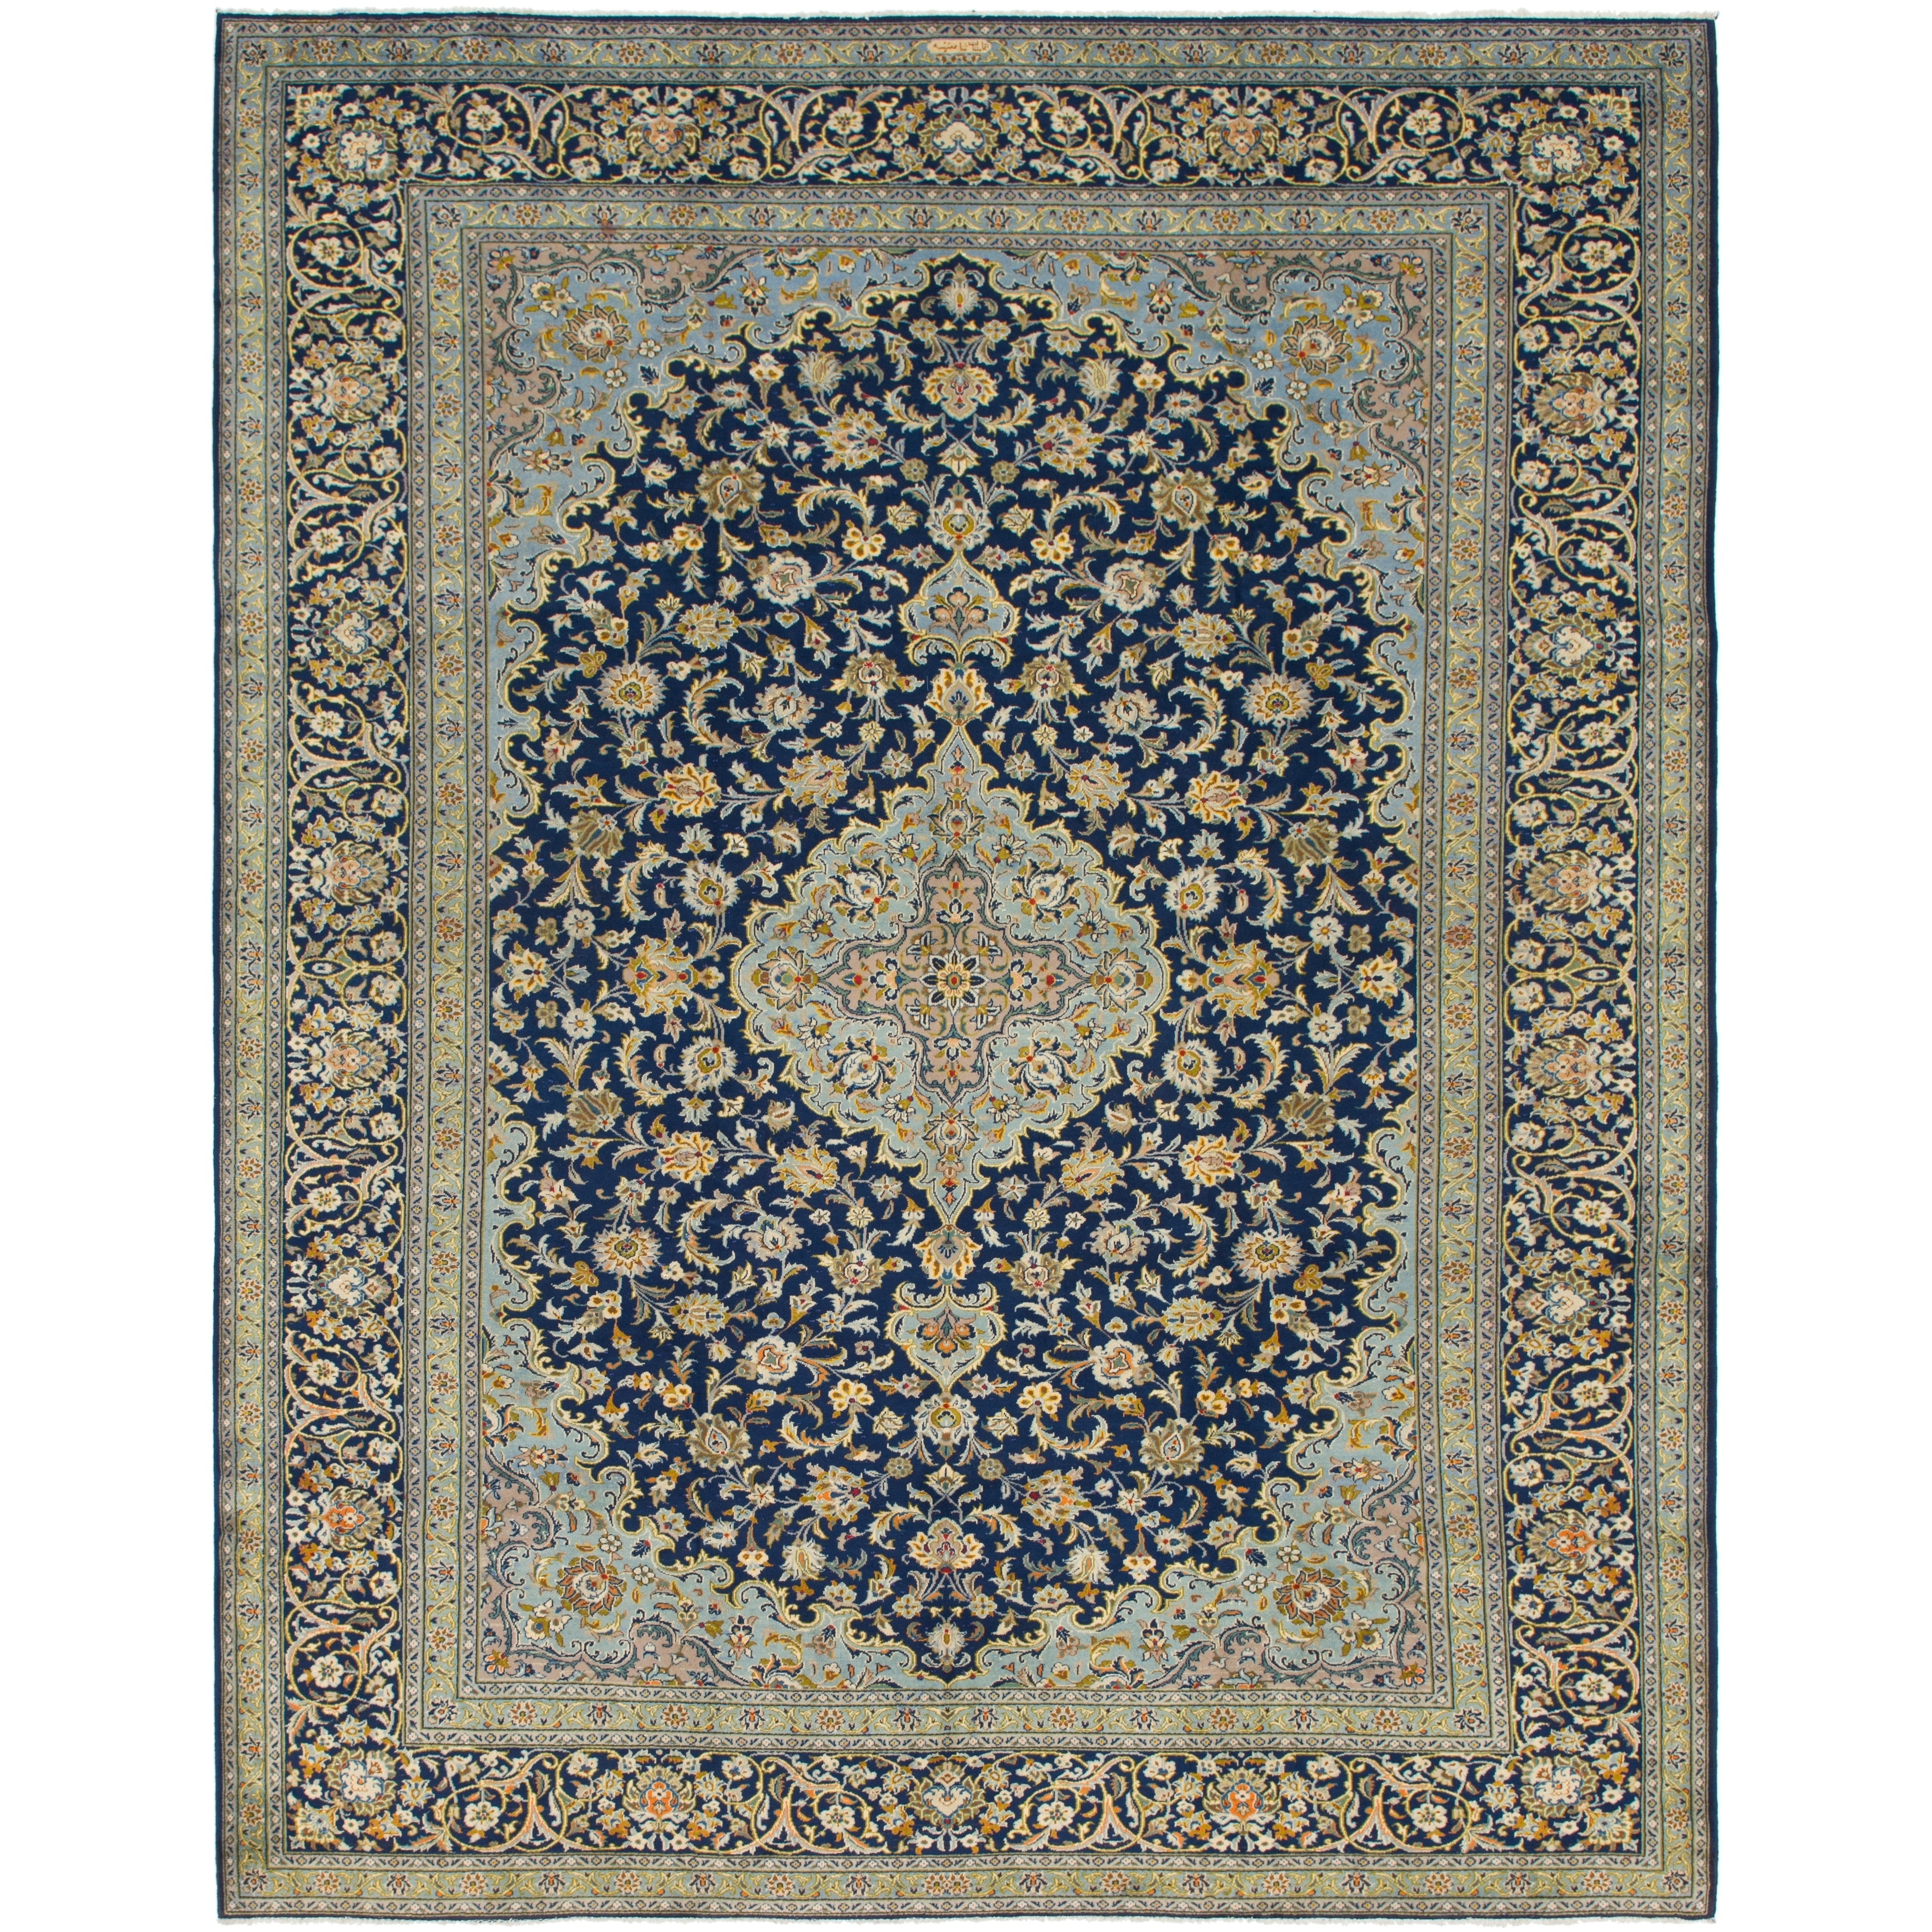 Hand Knotted Kashan Semi Antique Wool Area Rug - 10 2 x 13 (Navy blue - 10 2 x 13)